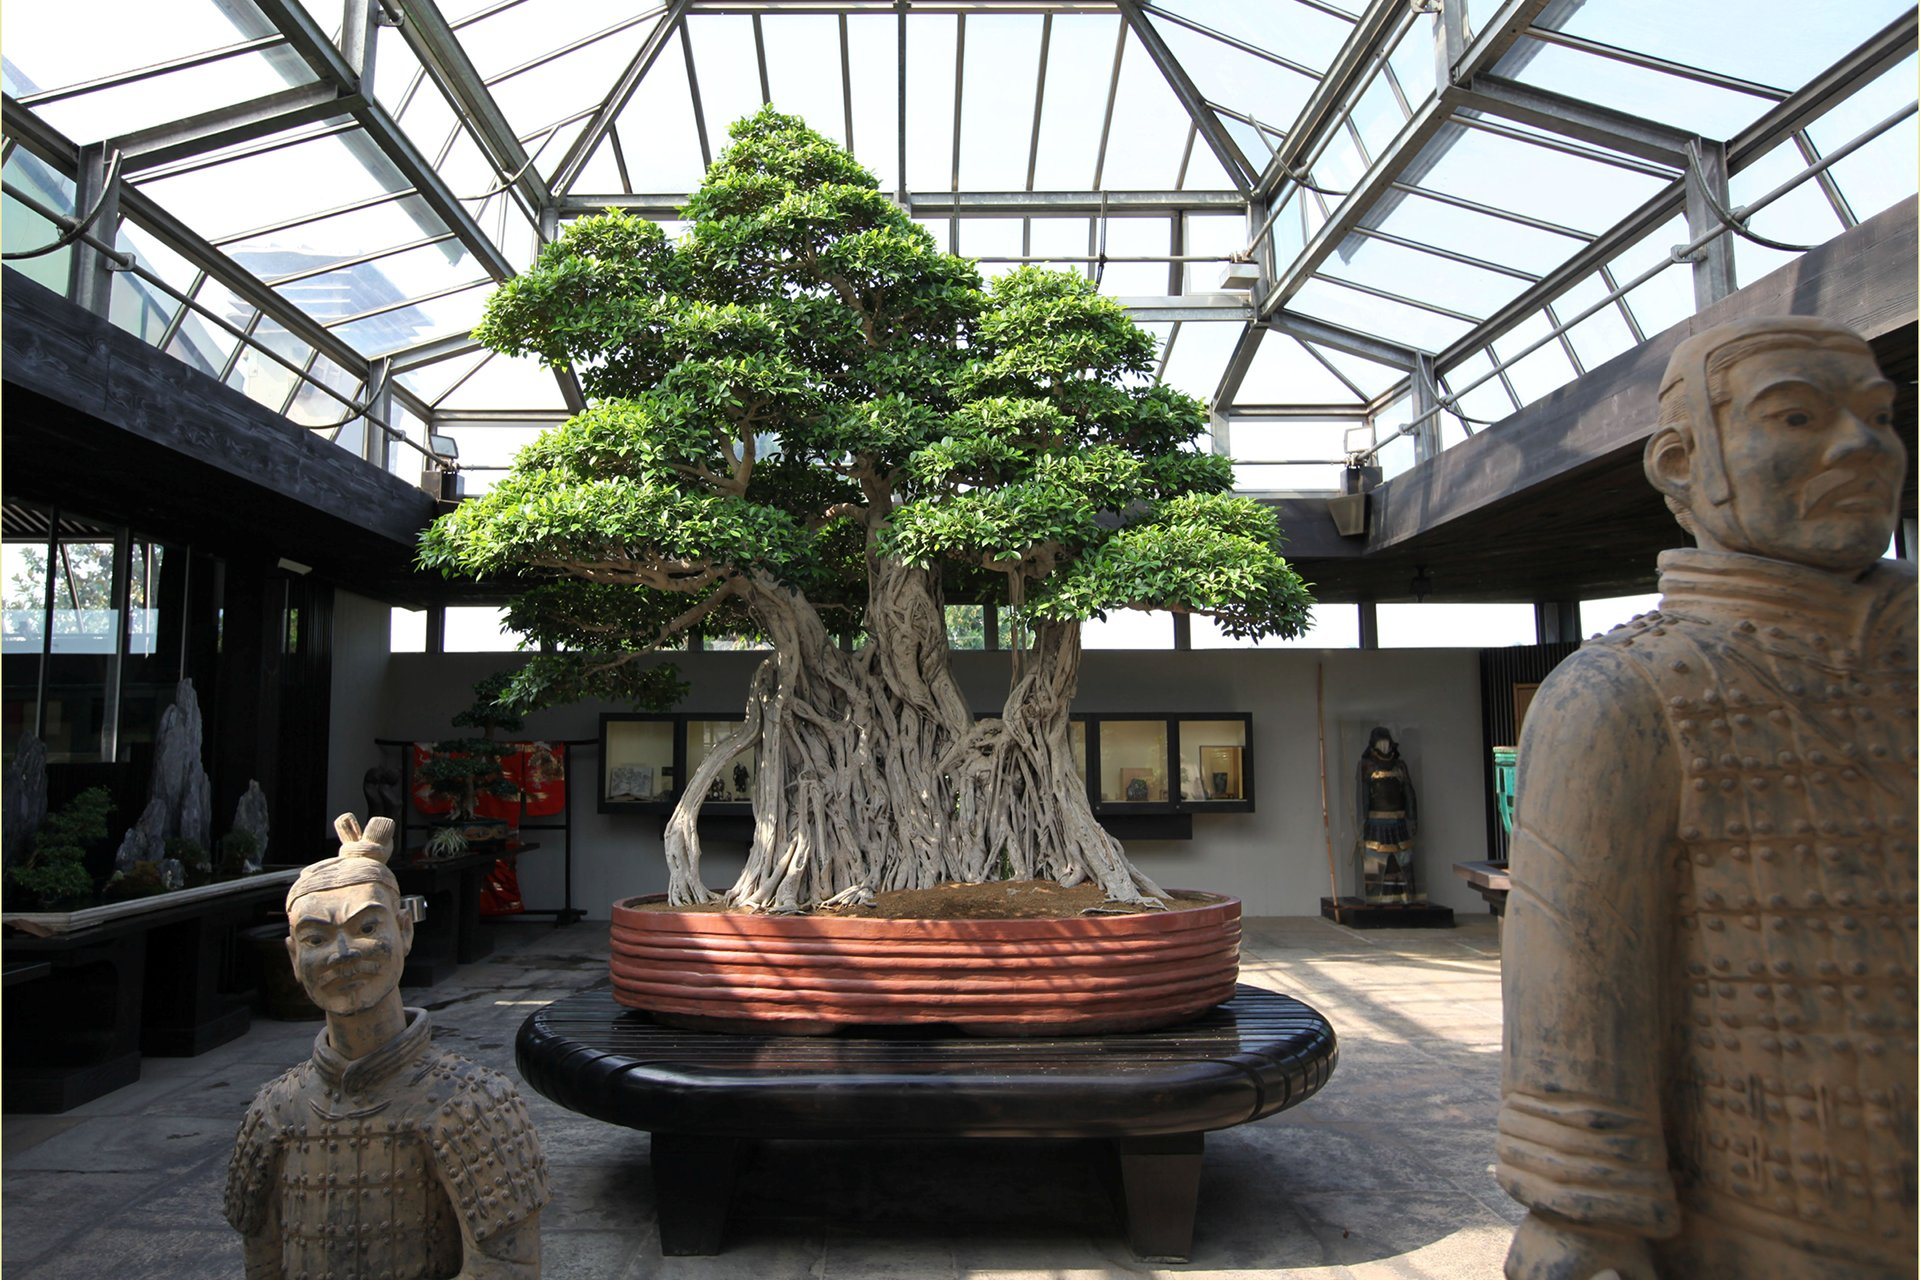 The thousand-year-old Ficus retusa linn